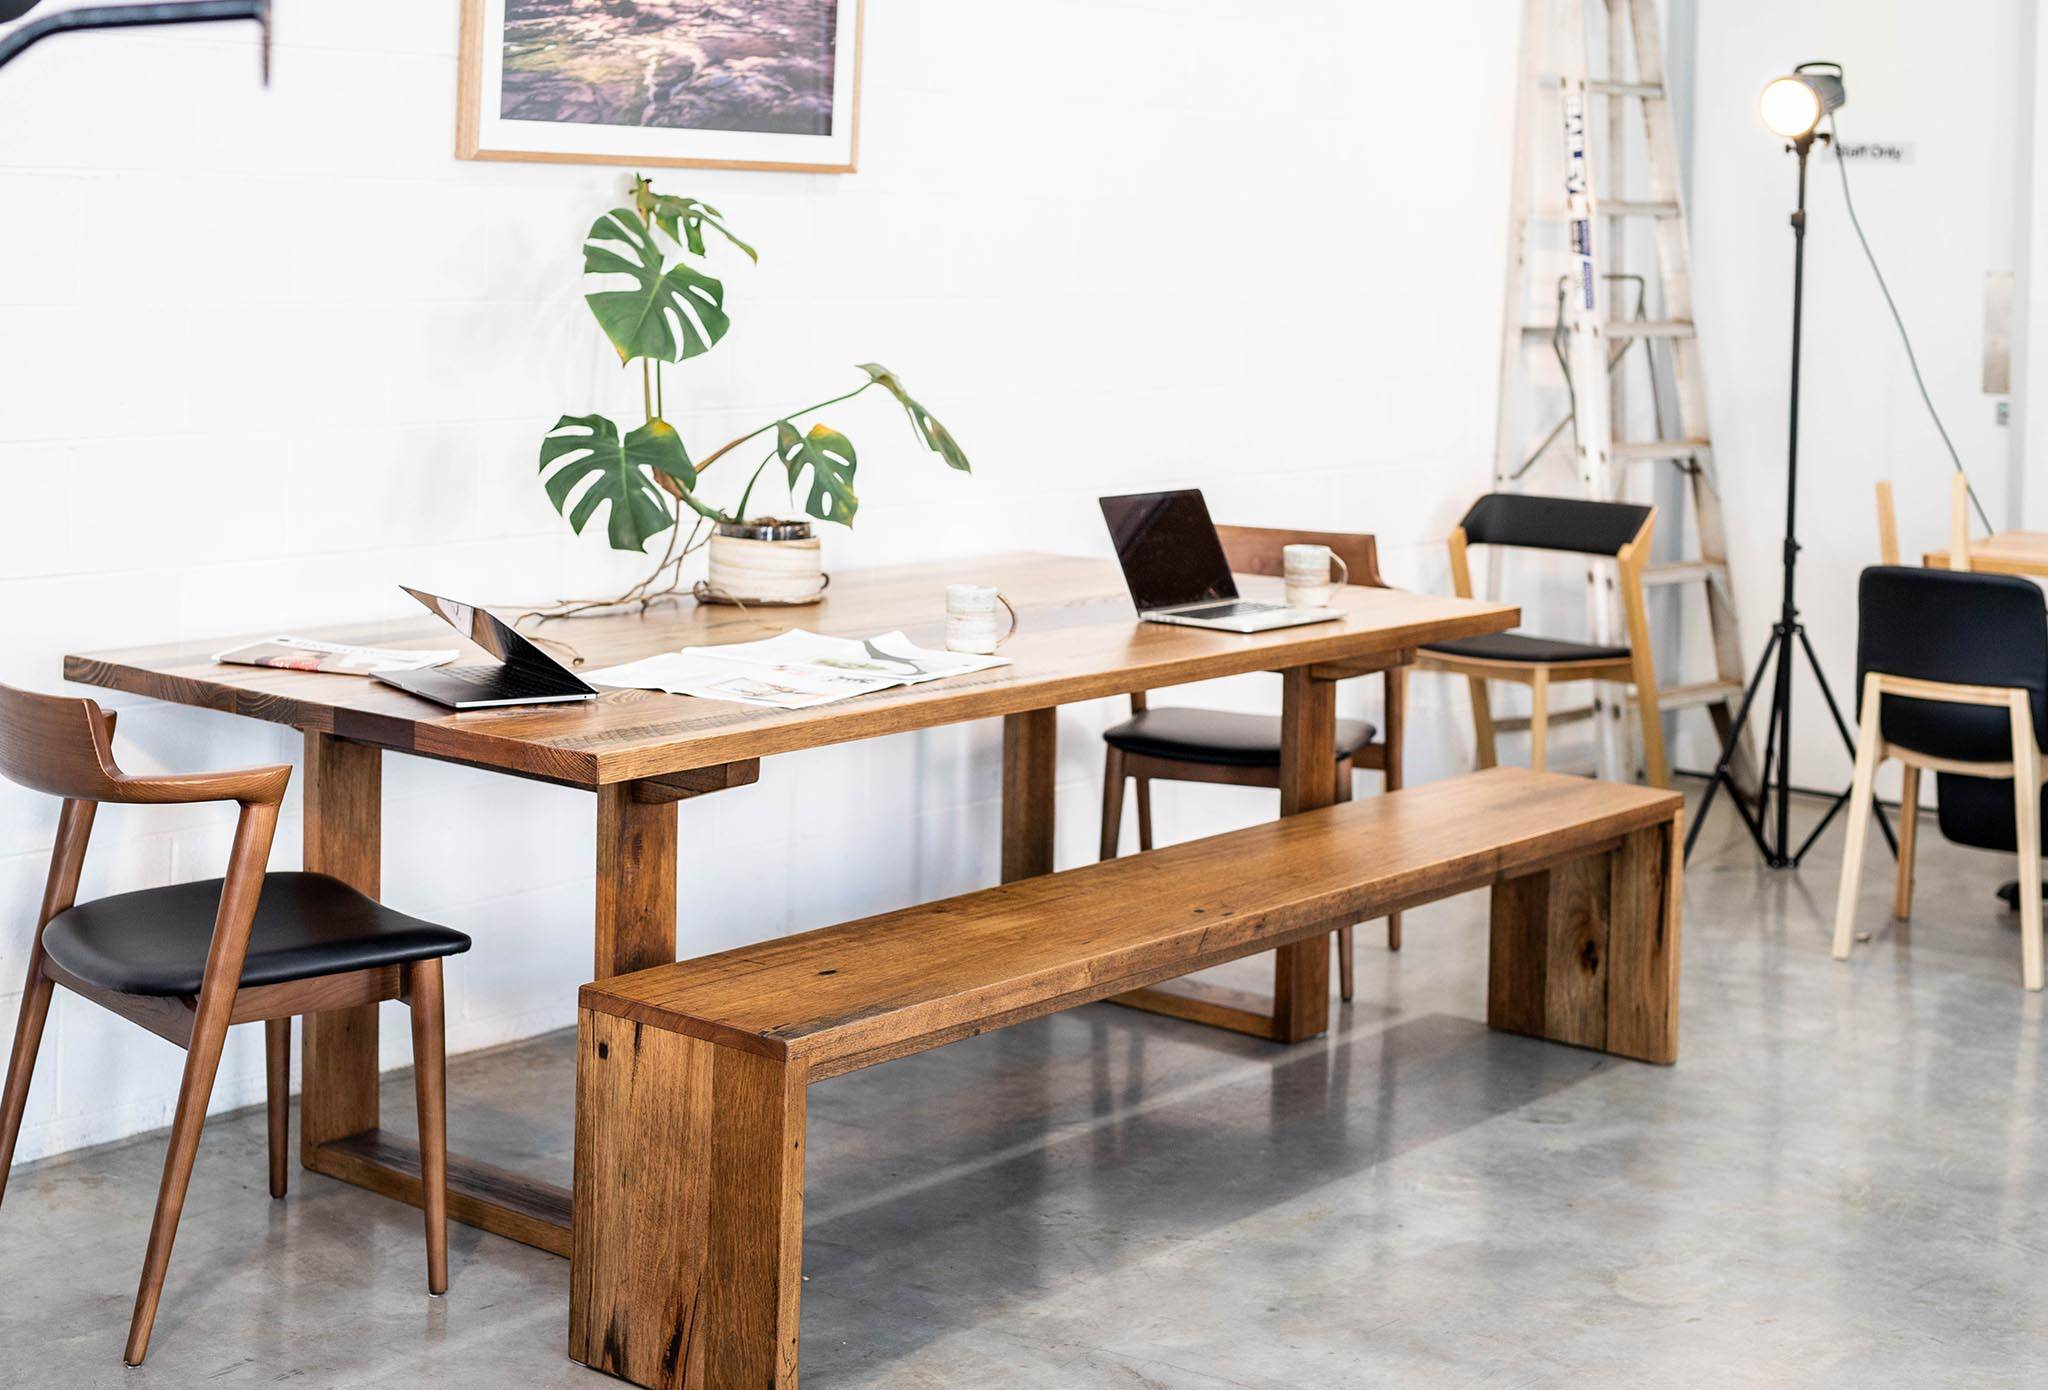 Board Room Table Straightboard Mixed Species Skip/BJ Timber Box End Legs